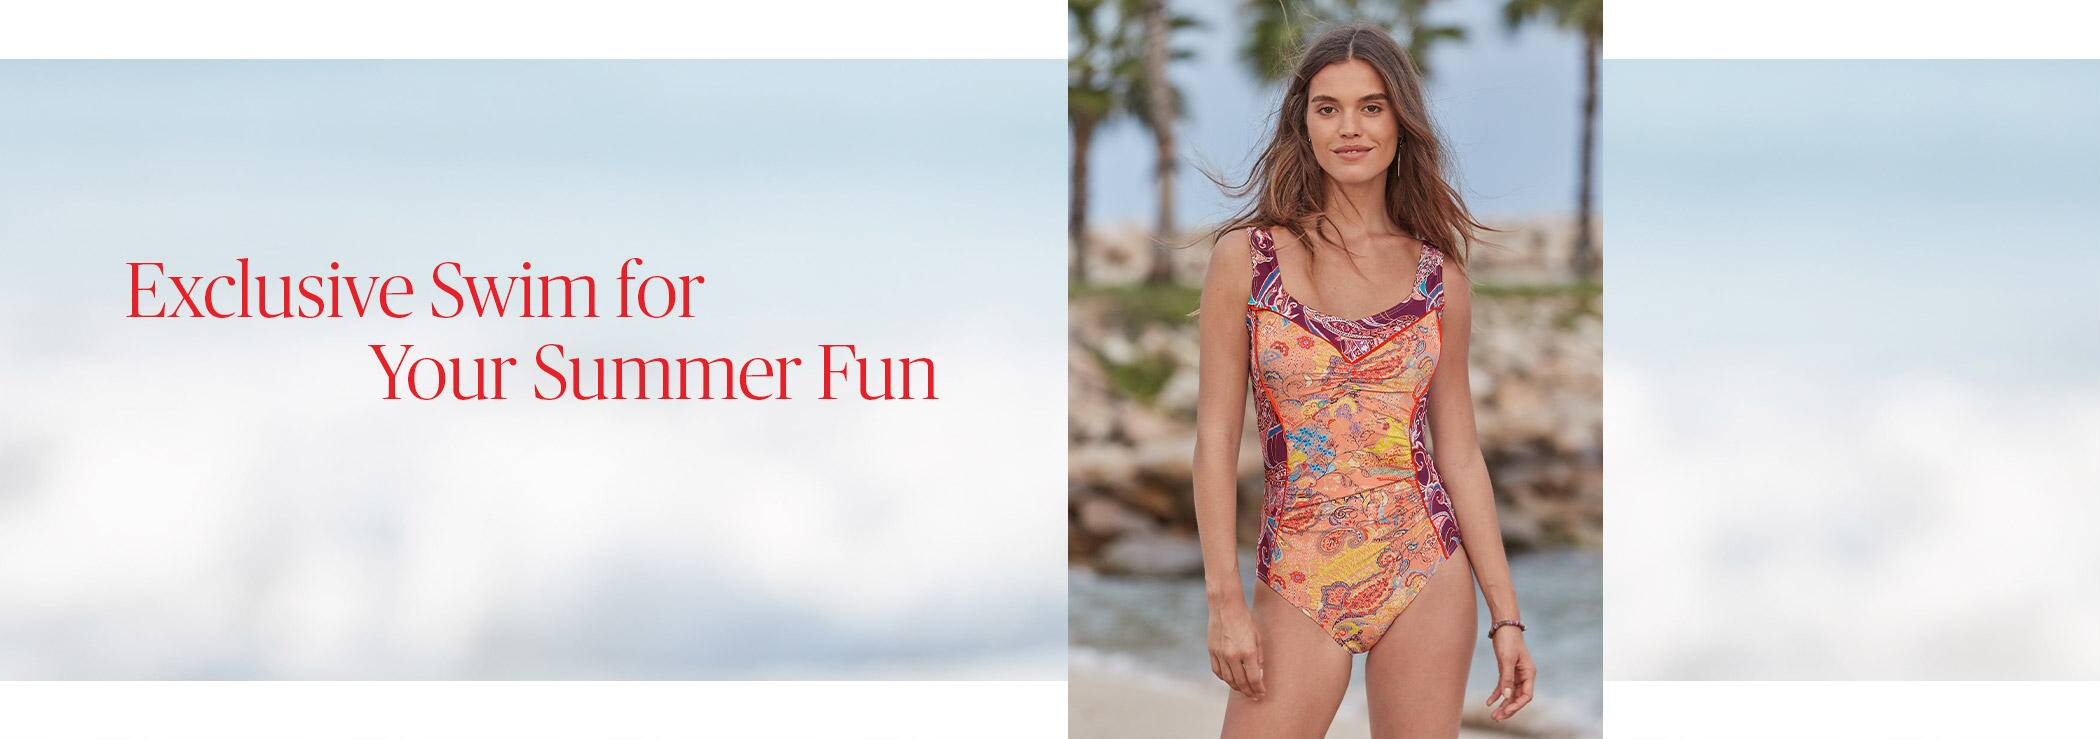 Exclusive Swim for Your Summer Fun